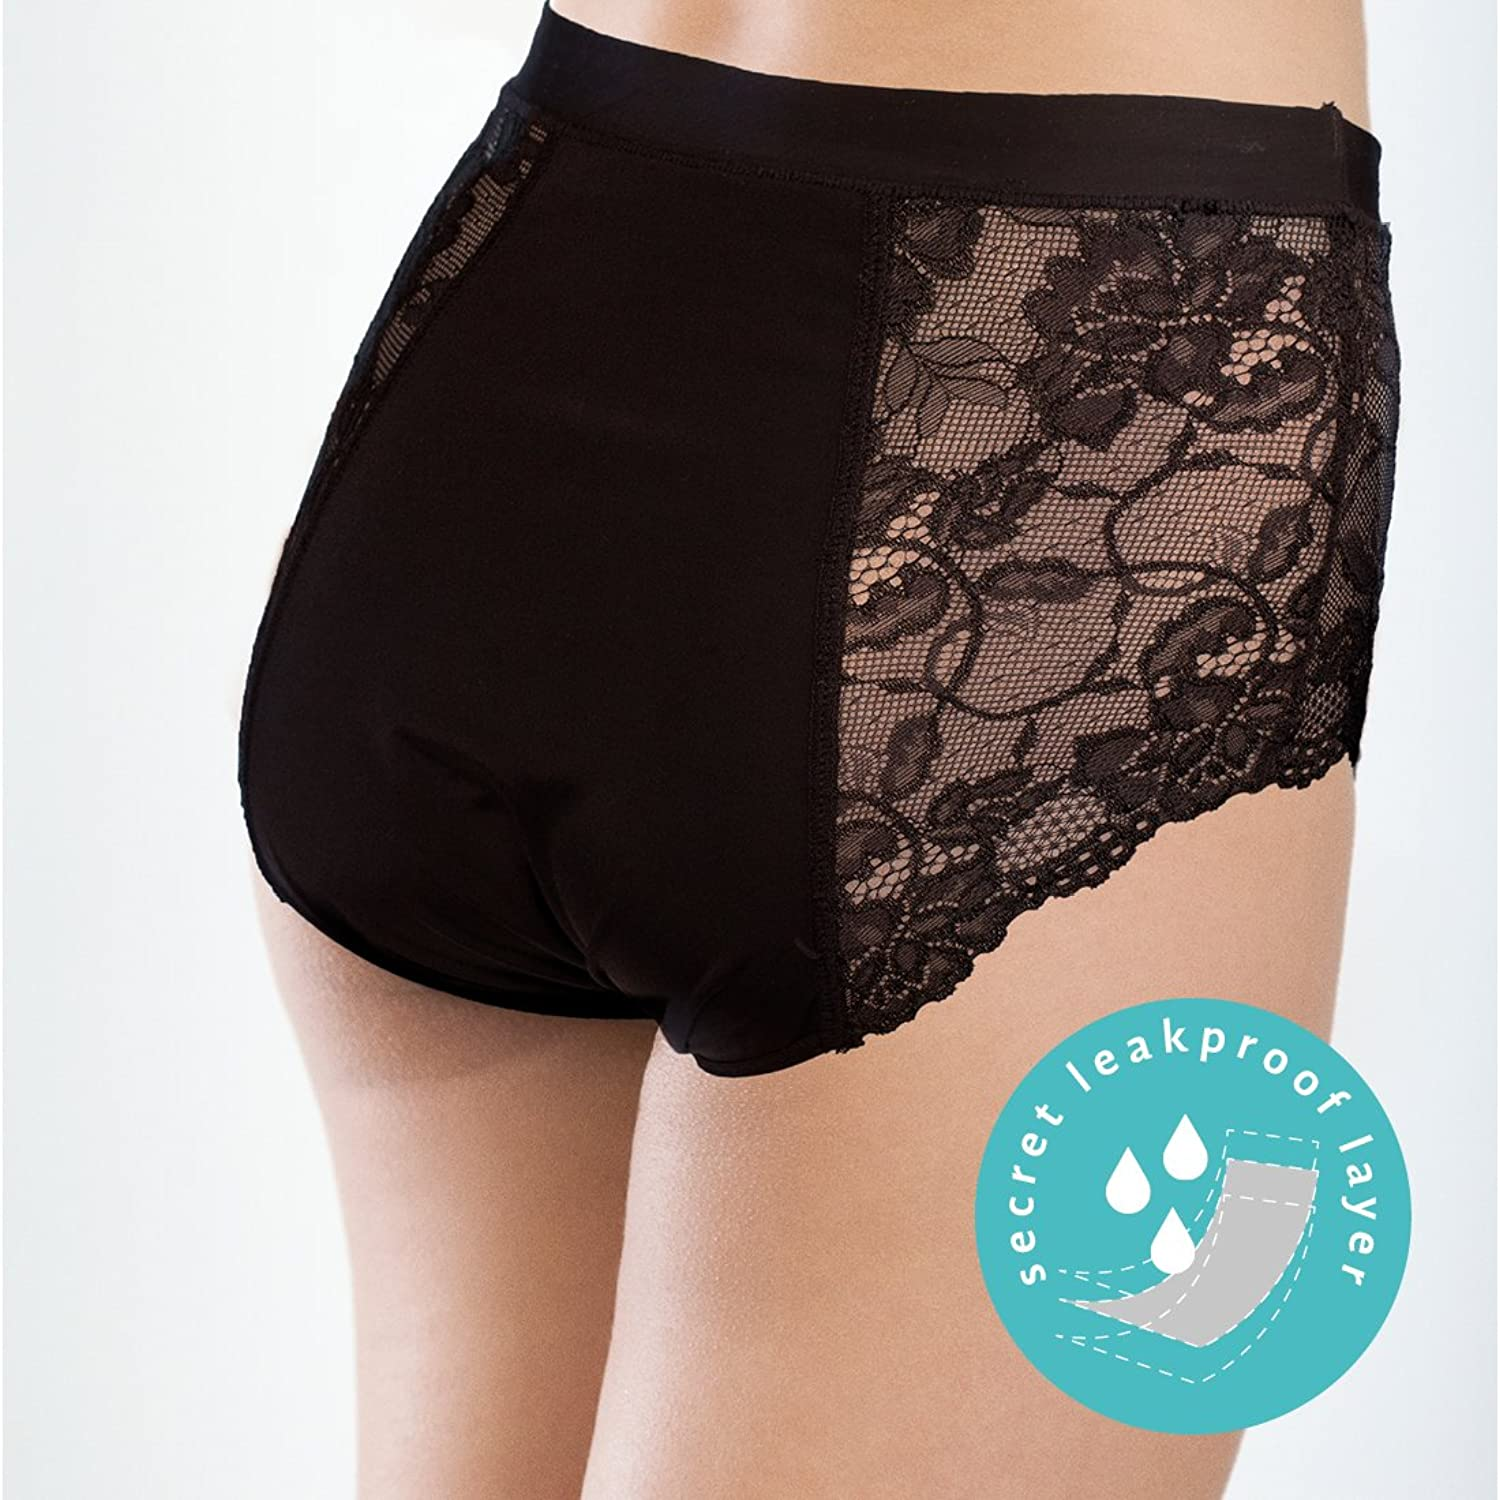 7aa2a6f46cb1 Details about Pretty Clever Pants (Black Lace) – Leakproof Incontinence  Underwear Knickers 2pk